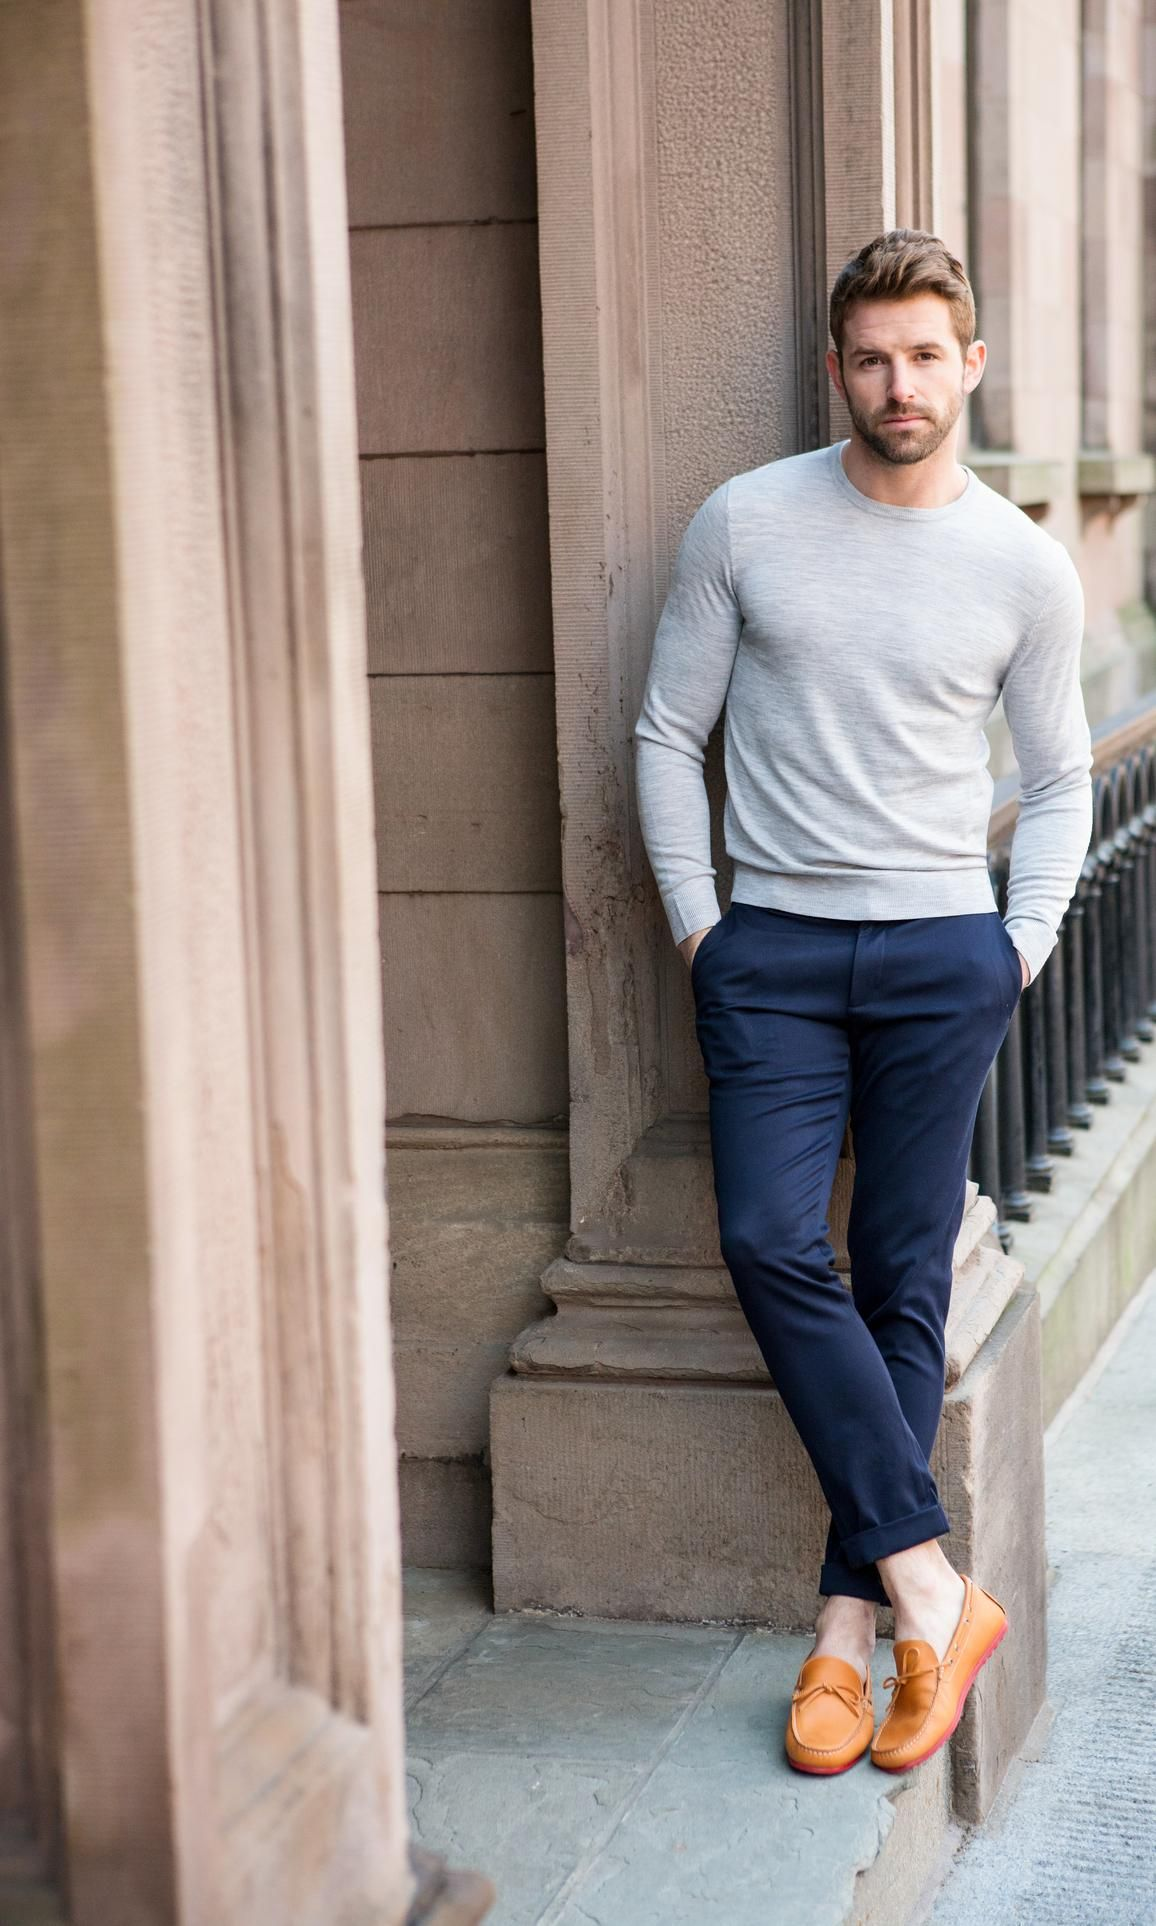 The Barca Mens Casual Outfits Mens Outfits Mens Fashion Casual